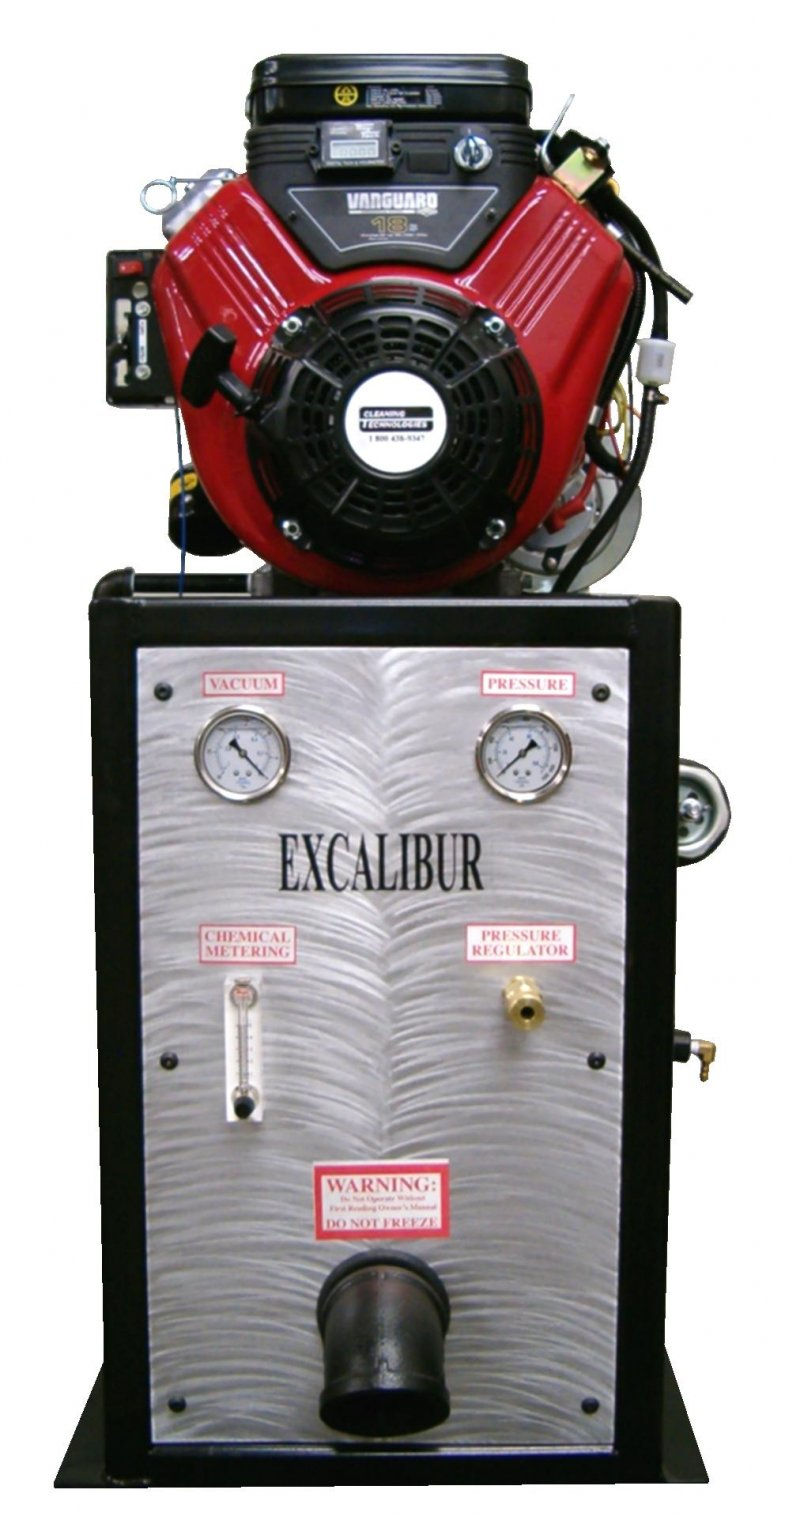 The Excalibur Truck Mount Carpet Cleaning Machine